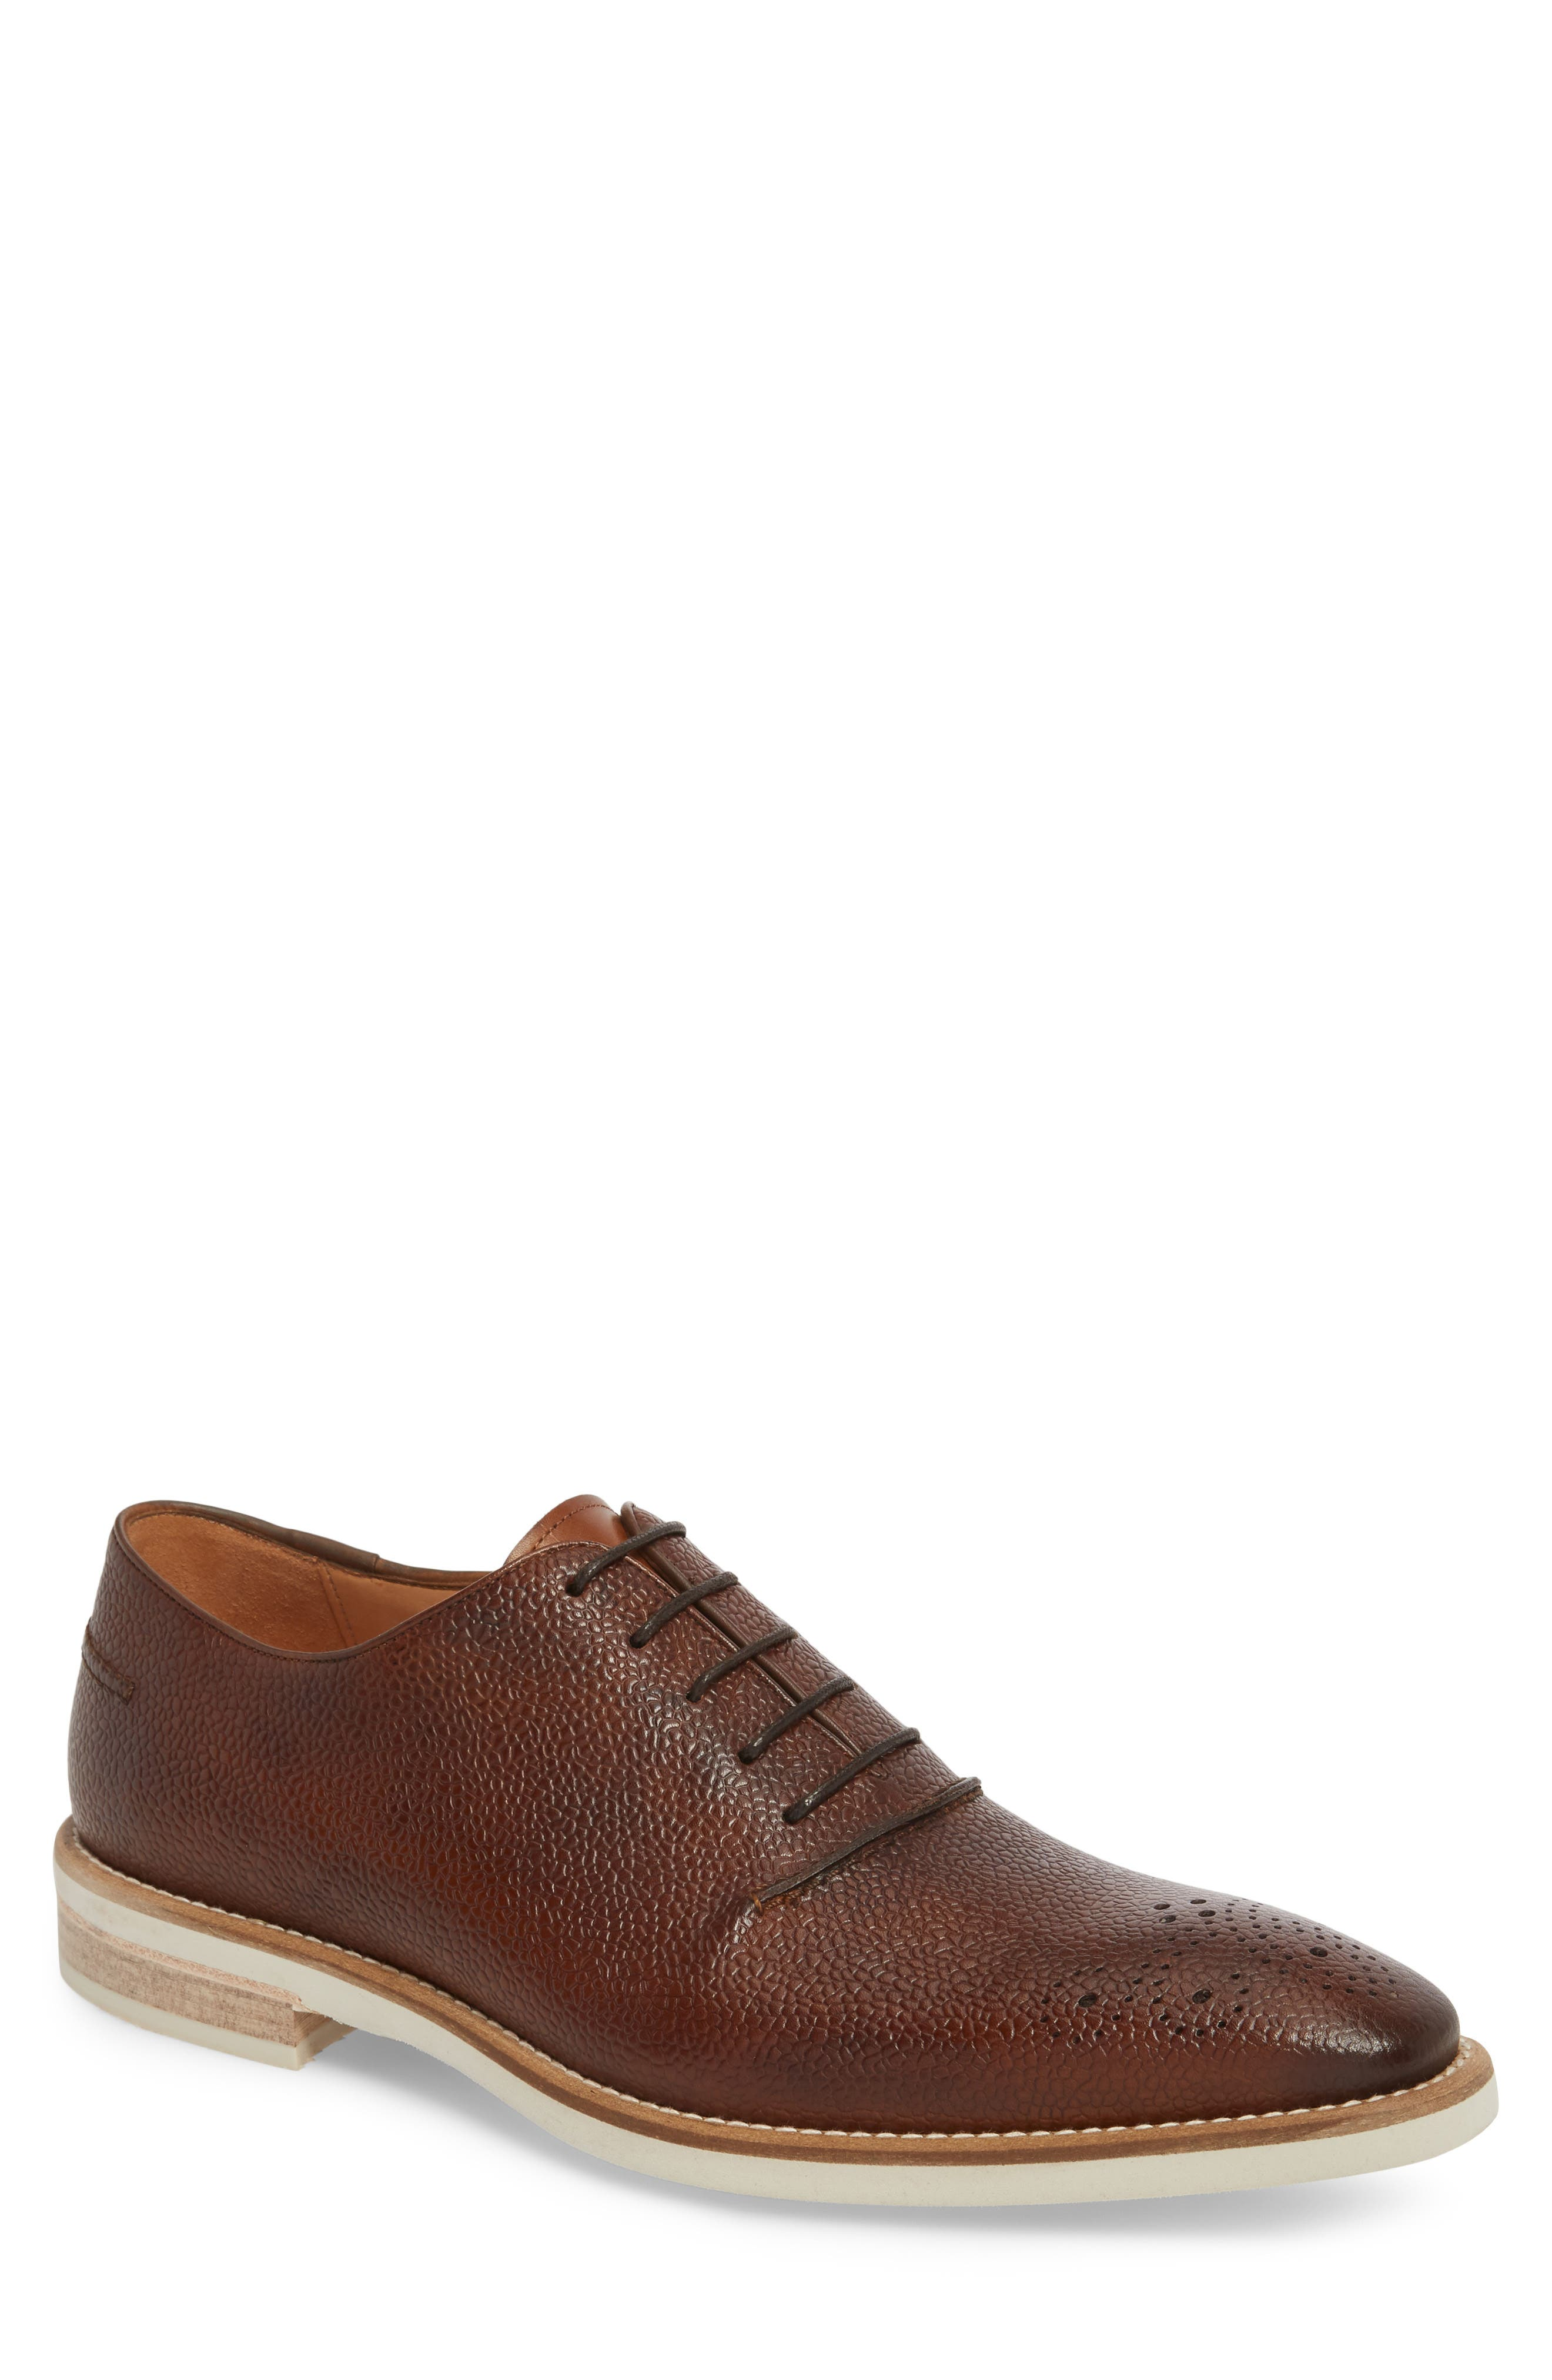 Polux Brogued Oxford,                         Main,                         color, Cognac Leather